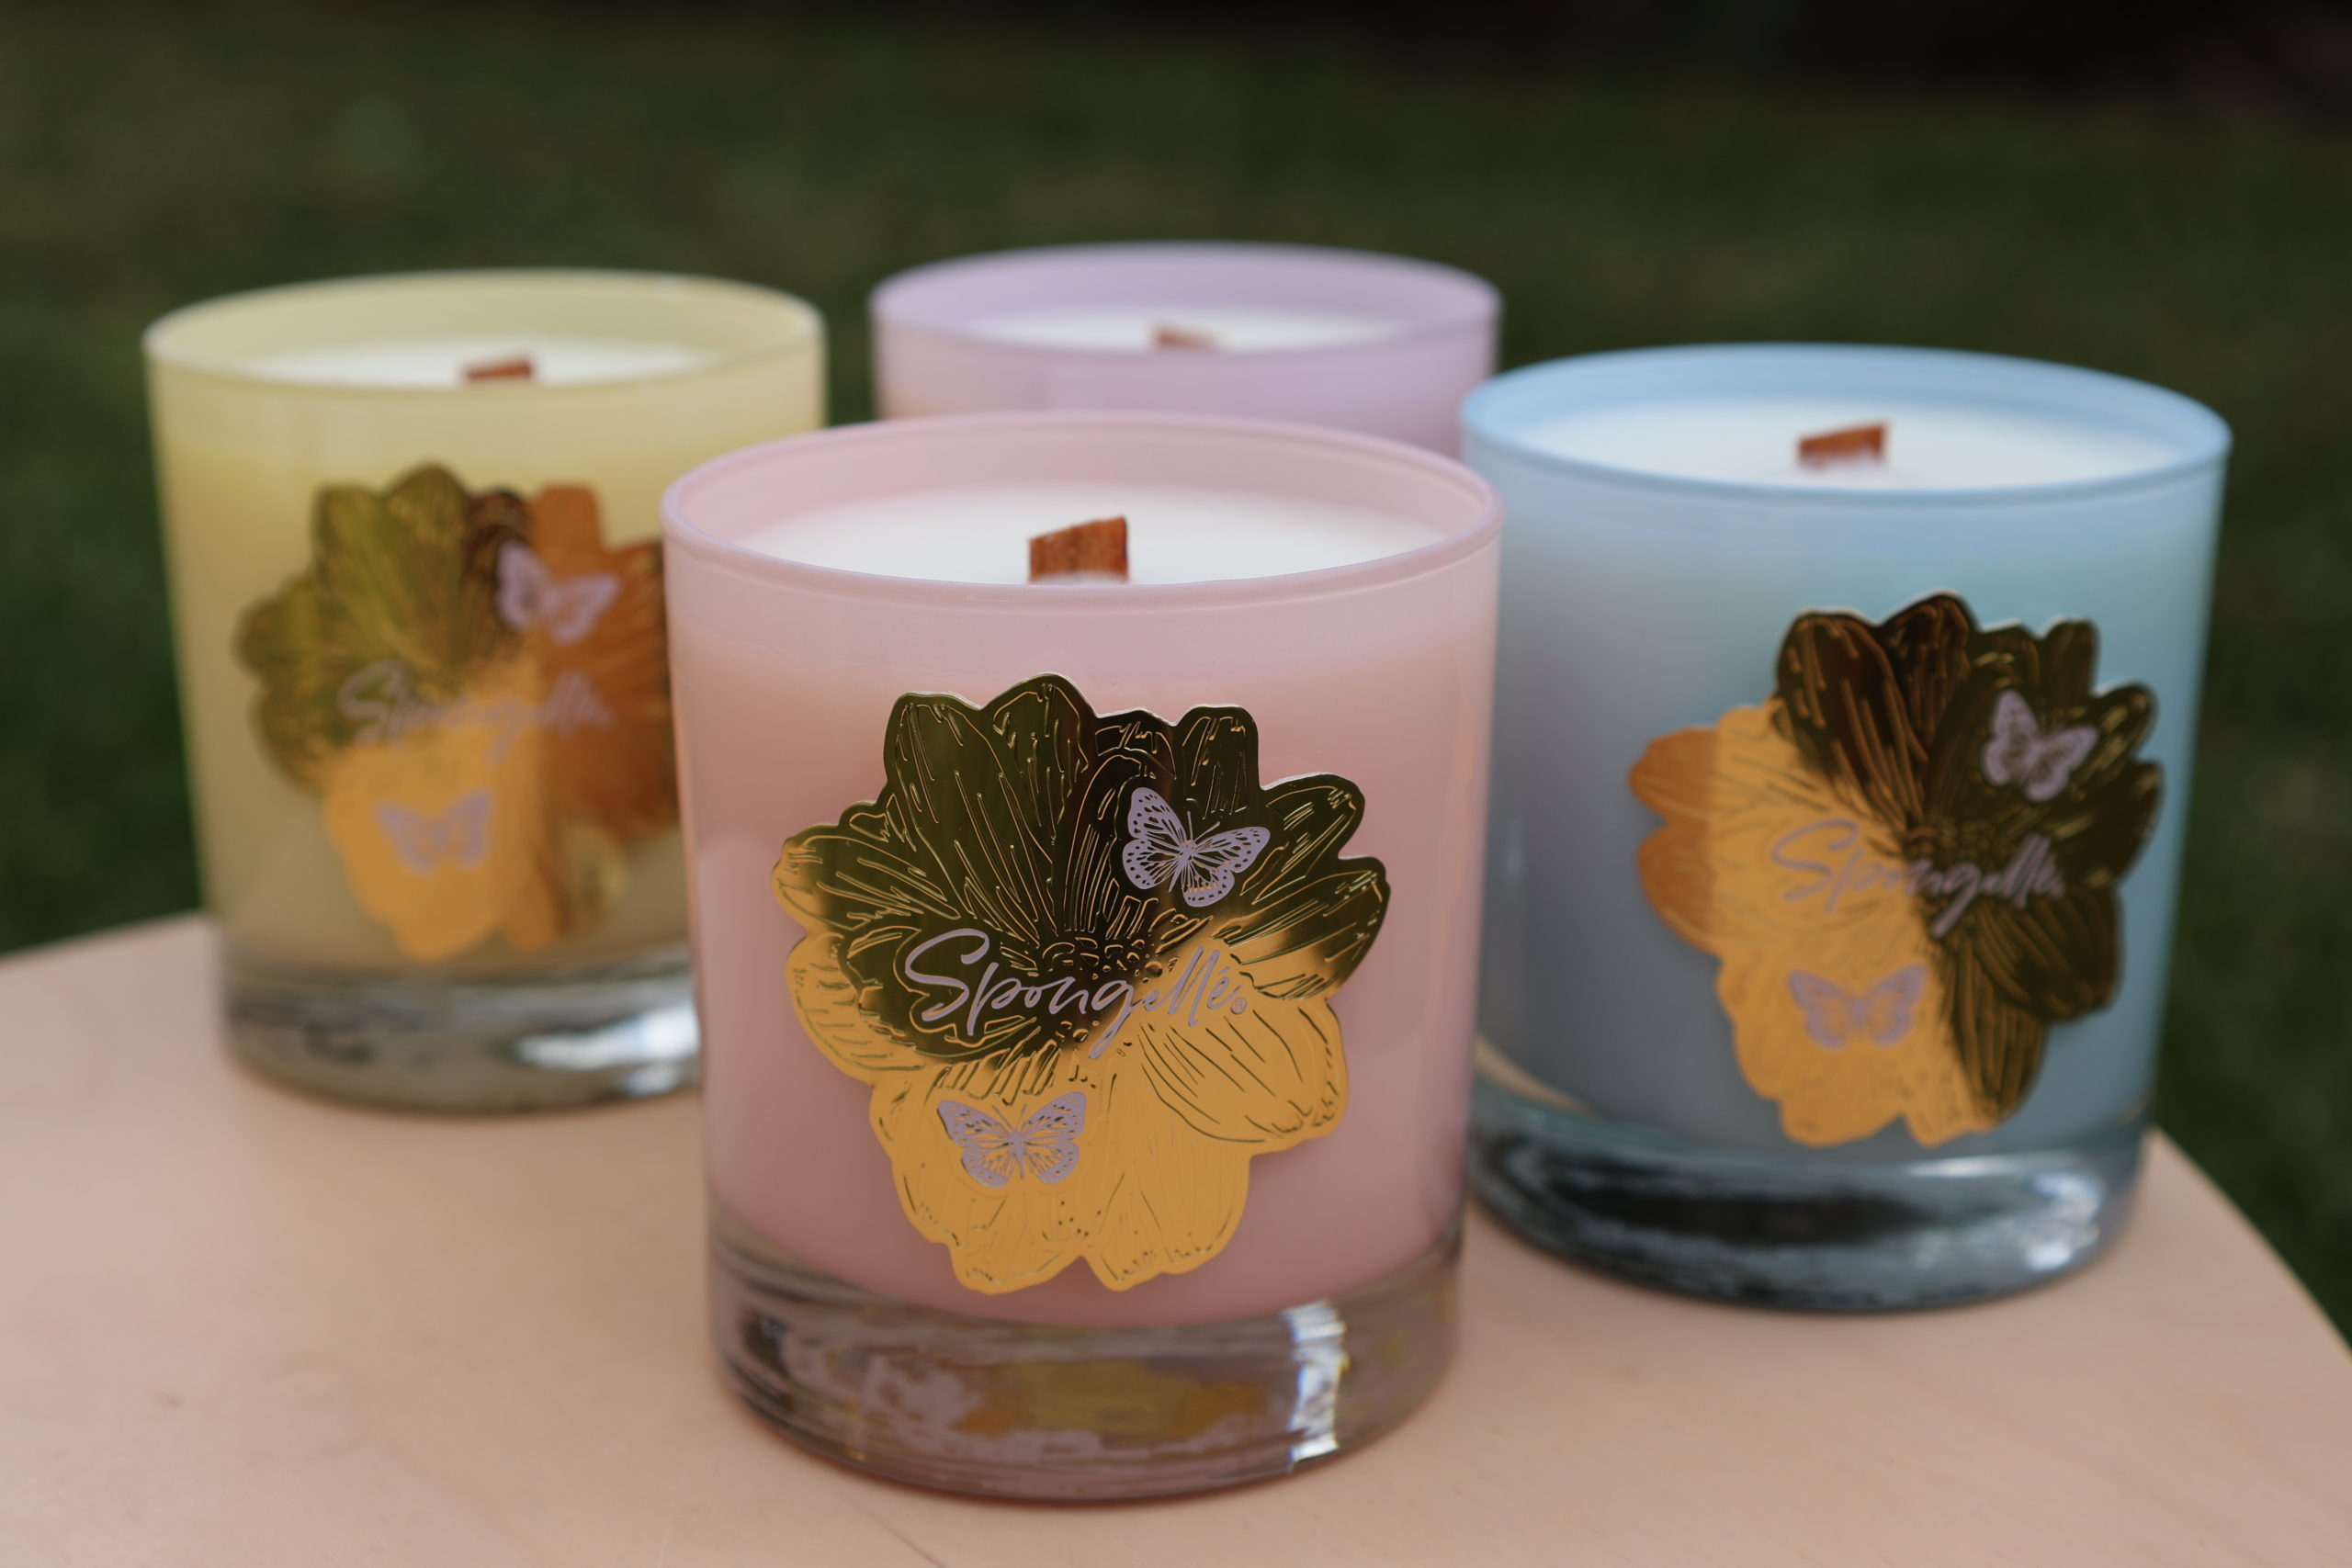 PARKS LONDON PEACH AROMATHERAPY CANDLE ONE WICK SCENTED CANDLE BOXED NEW GIFT